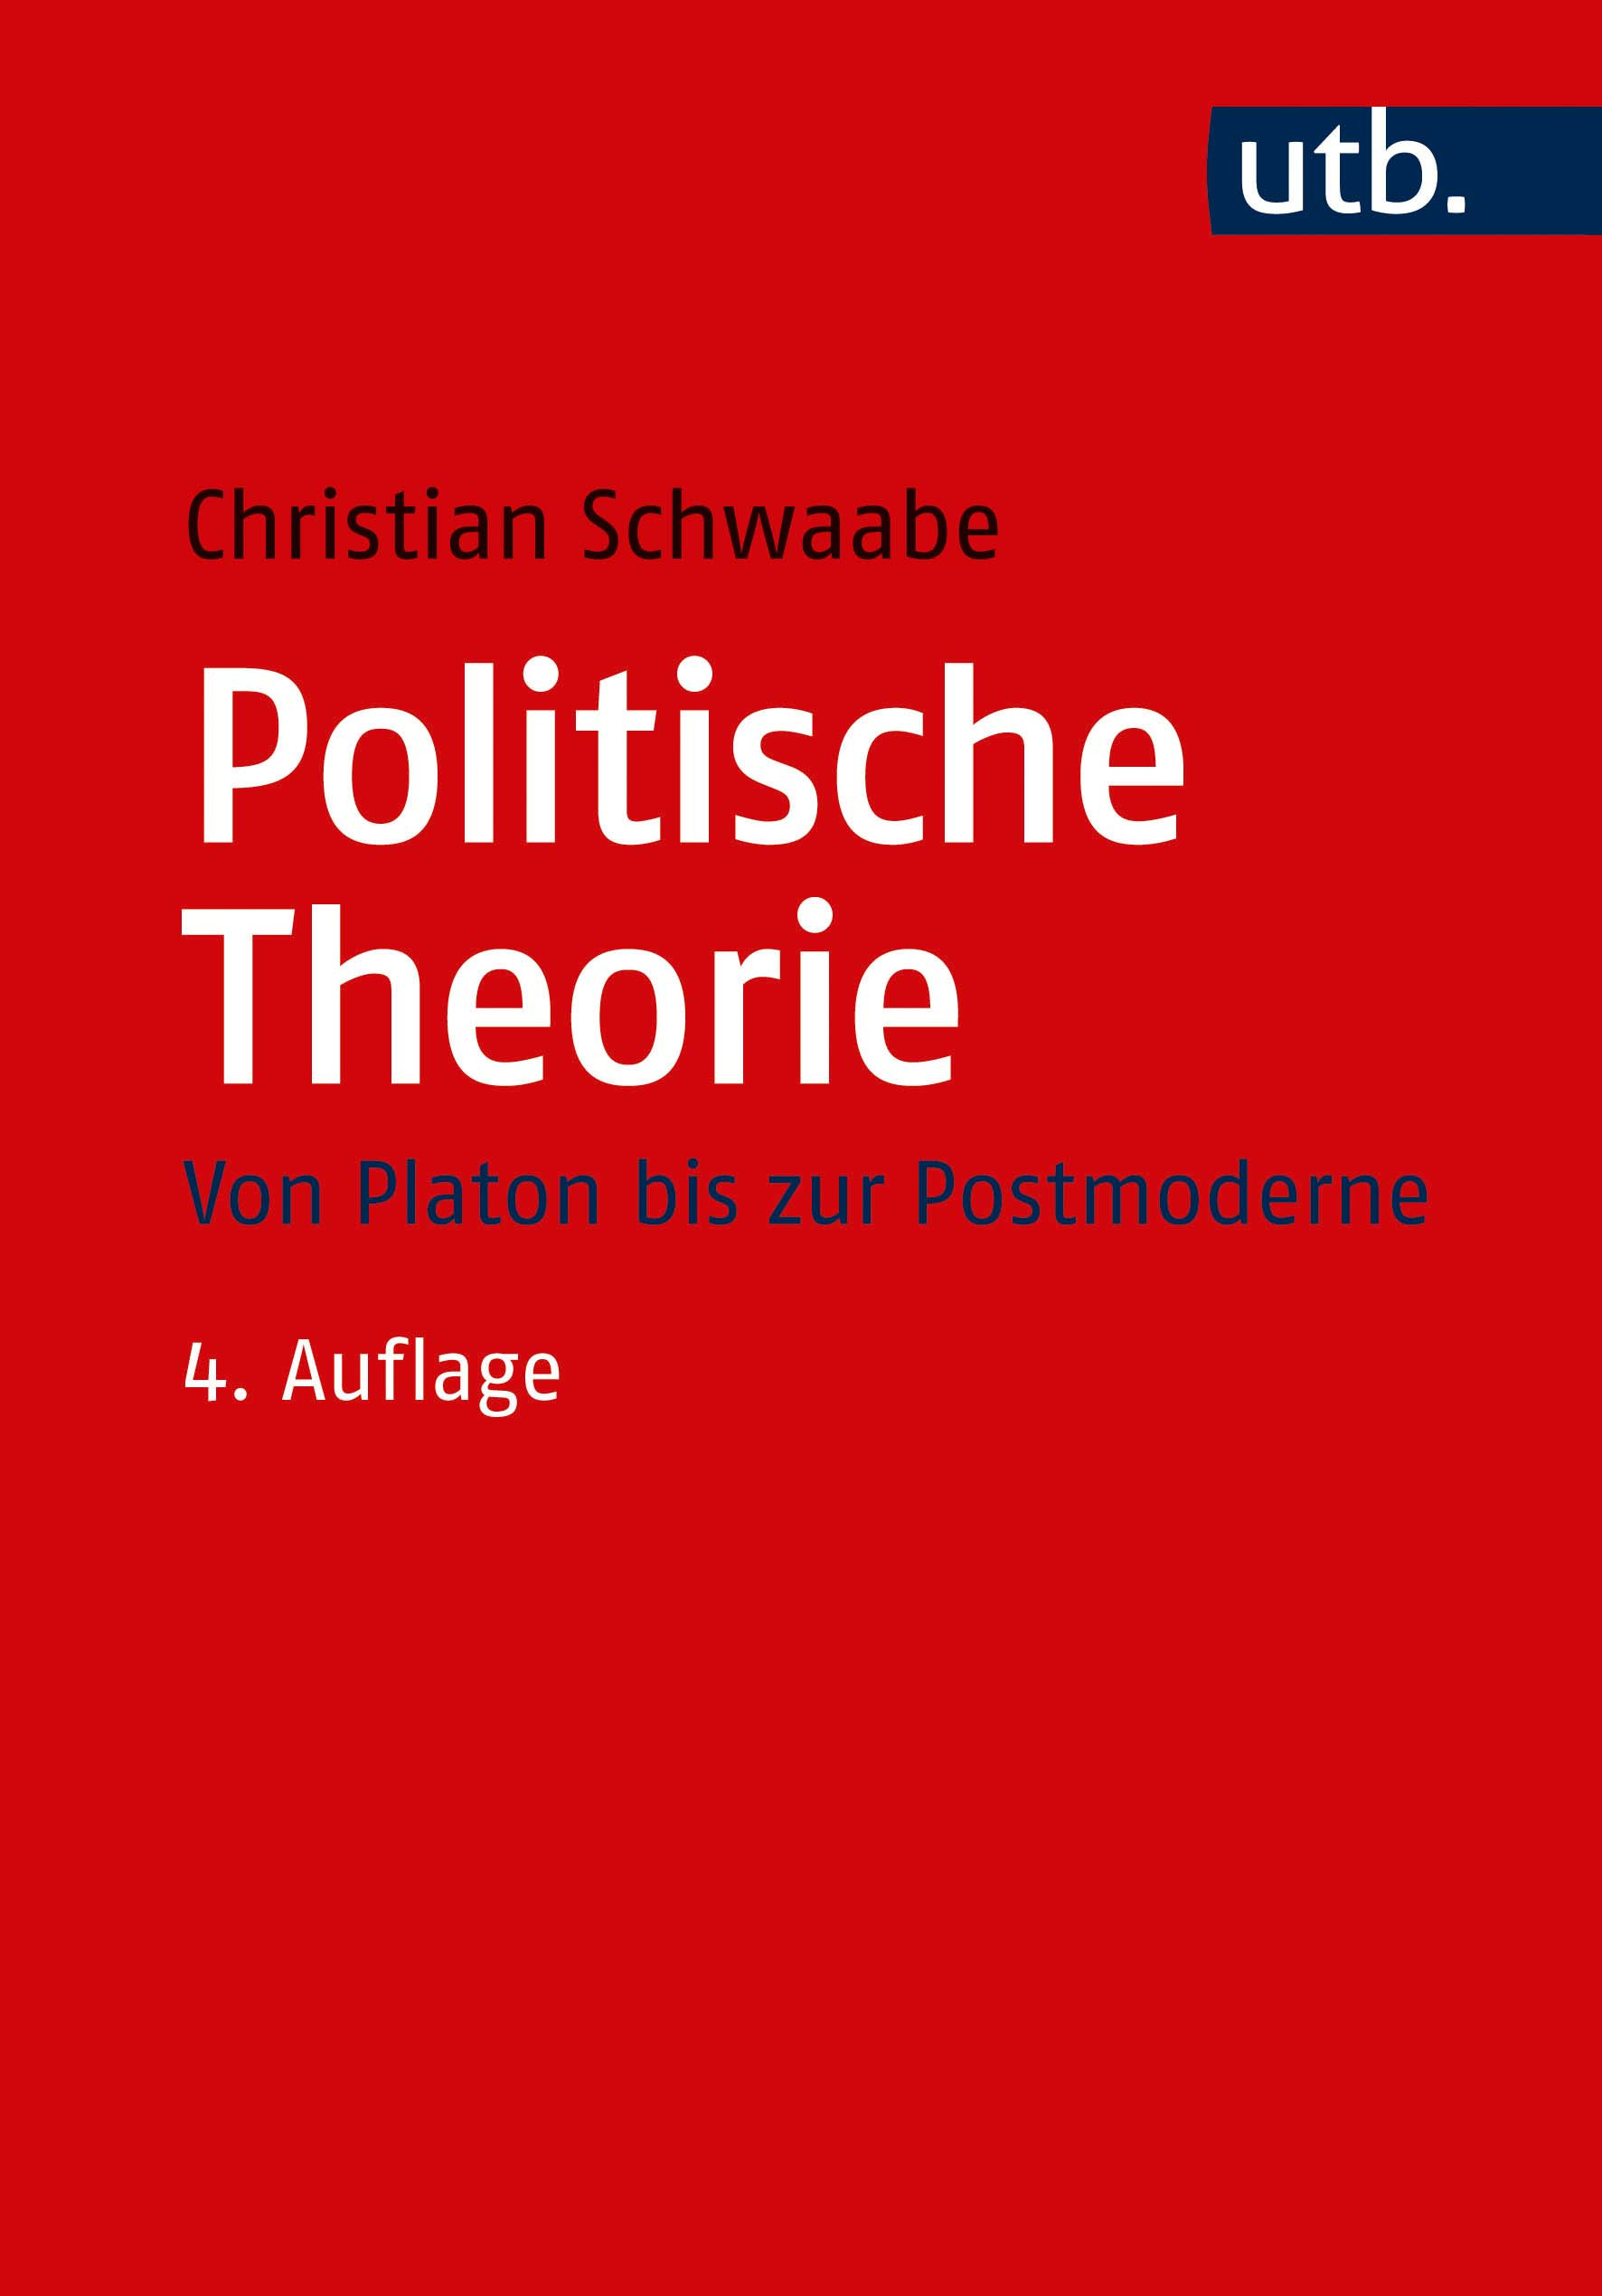 PD Dr Christian Schwaabe